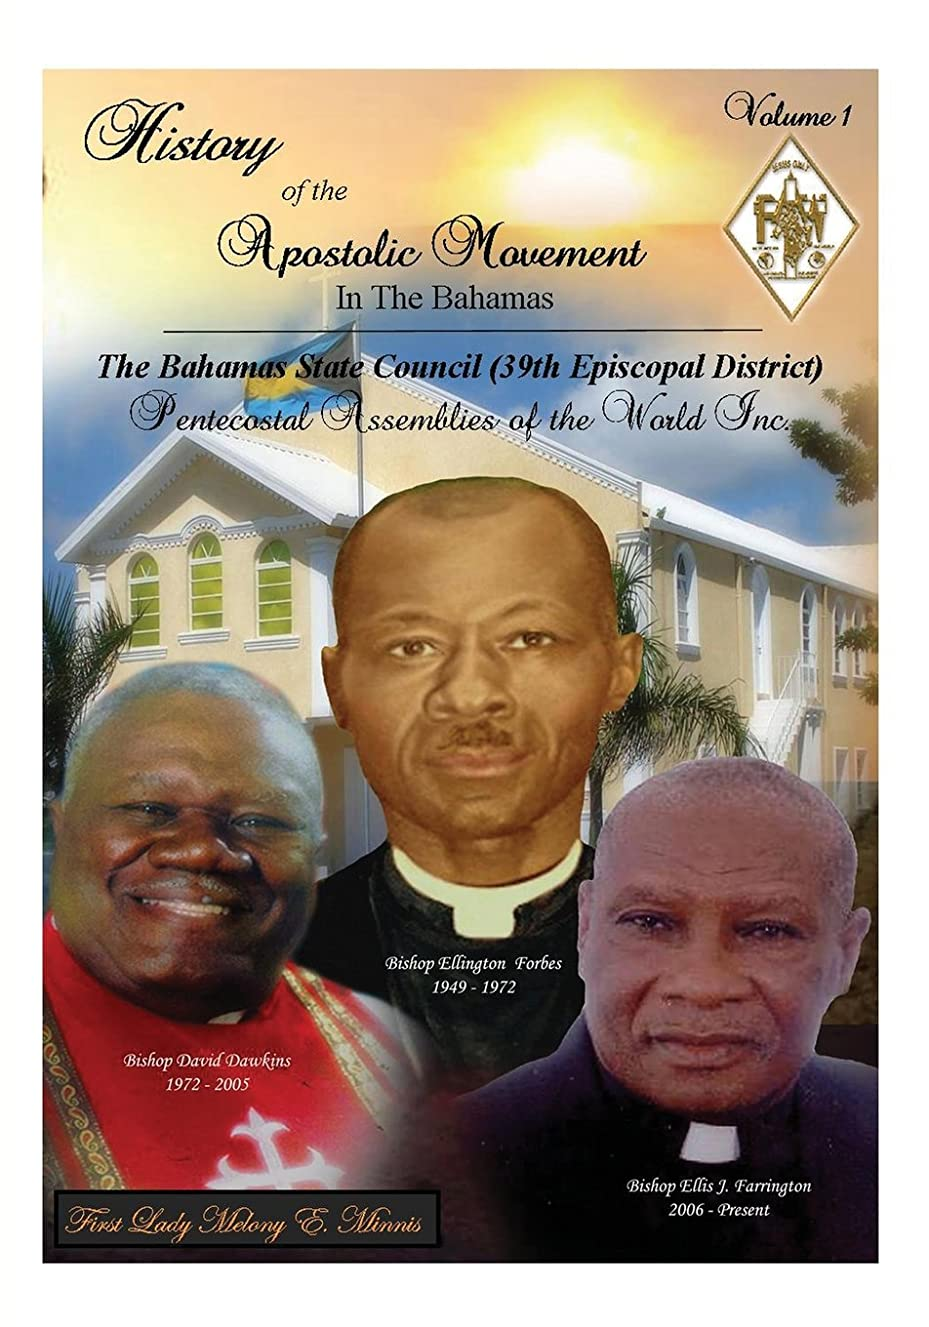 History of the Apostolic Movement In The Bahamas: History of The Bahamas State Council 39th Episcopal District of the Pentecostal Assemblies of the World Inc.